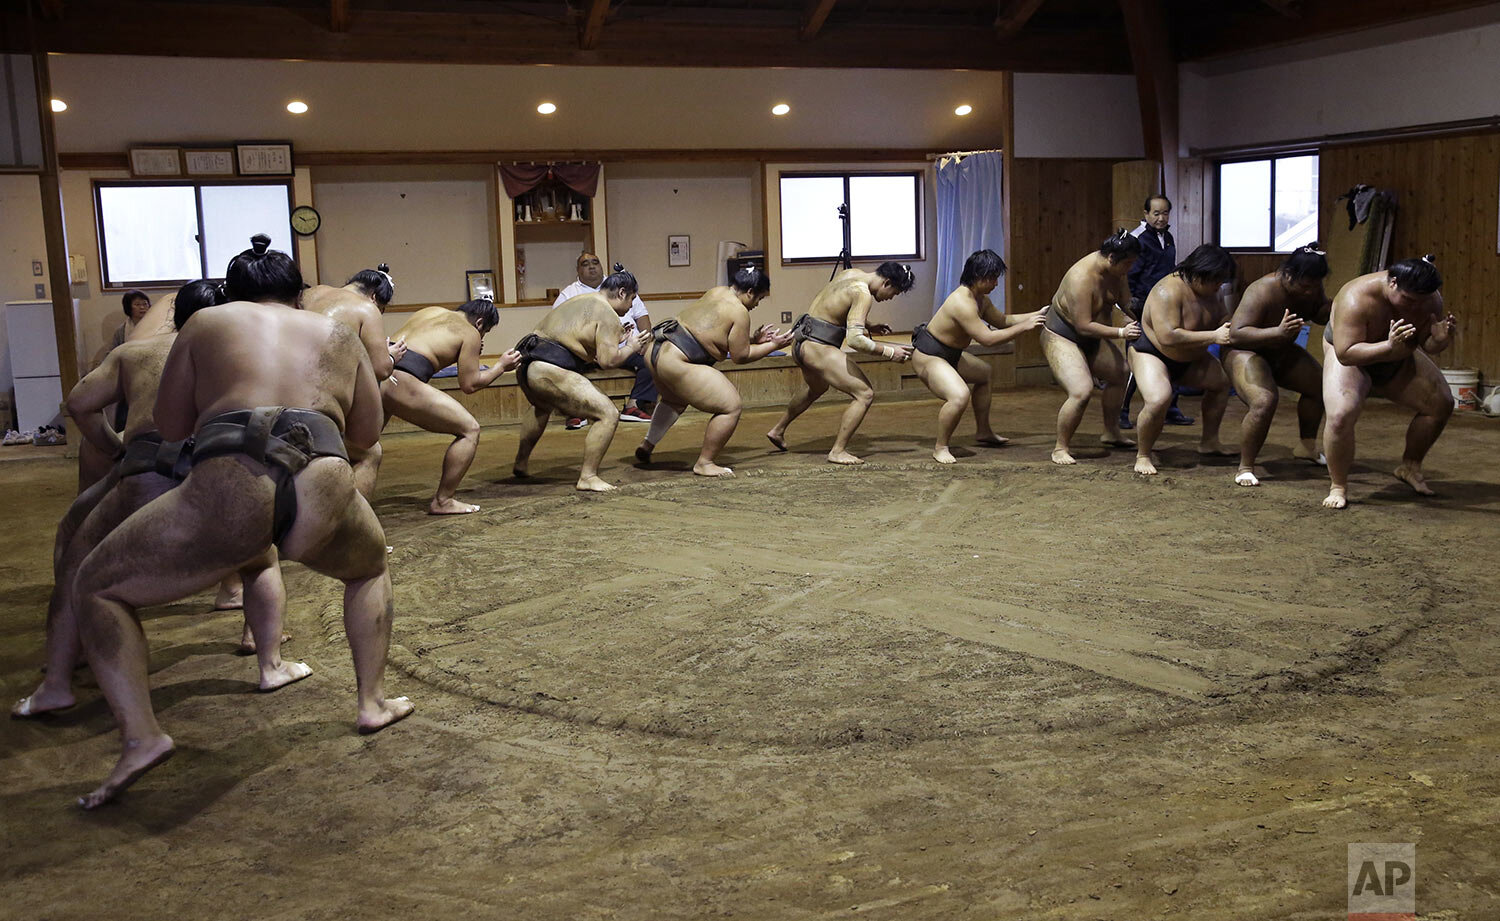 Sumo wrestlers perform an exercise during training at the Musashigawa Sumo Stable in Beppu, western Japan, riday, Oct. 18, 2019. (AP Photo/Aaron Favila)